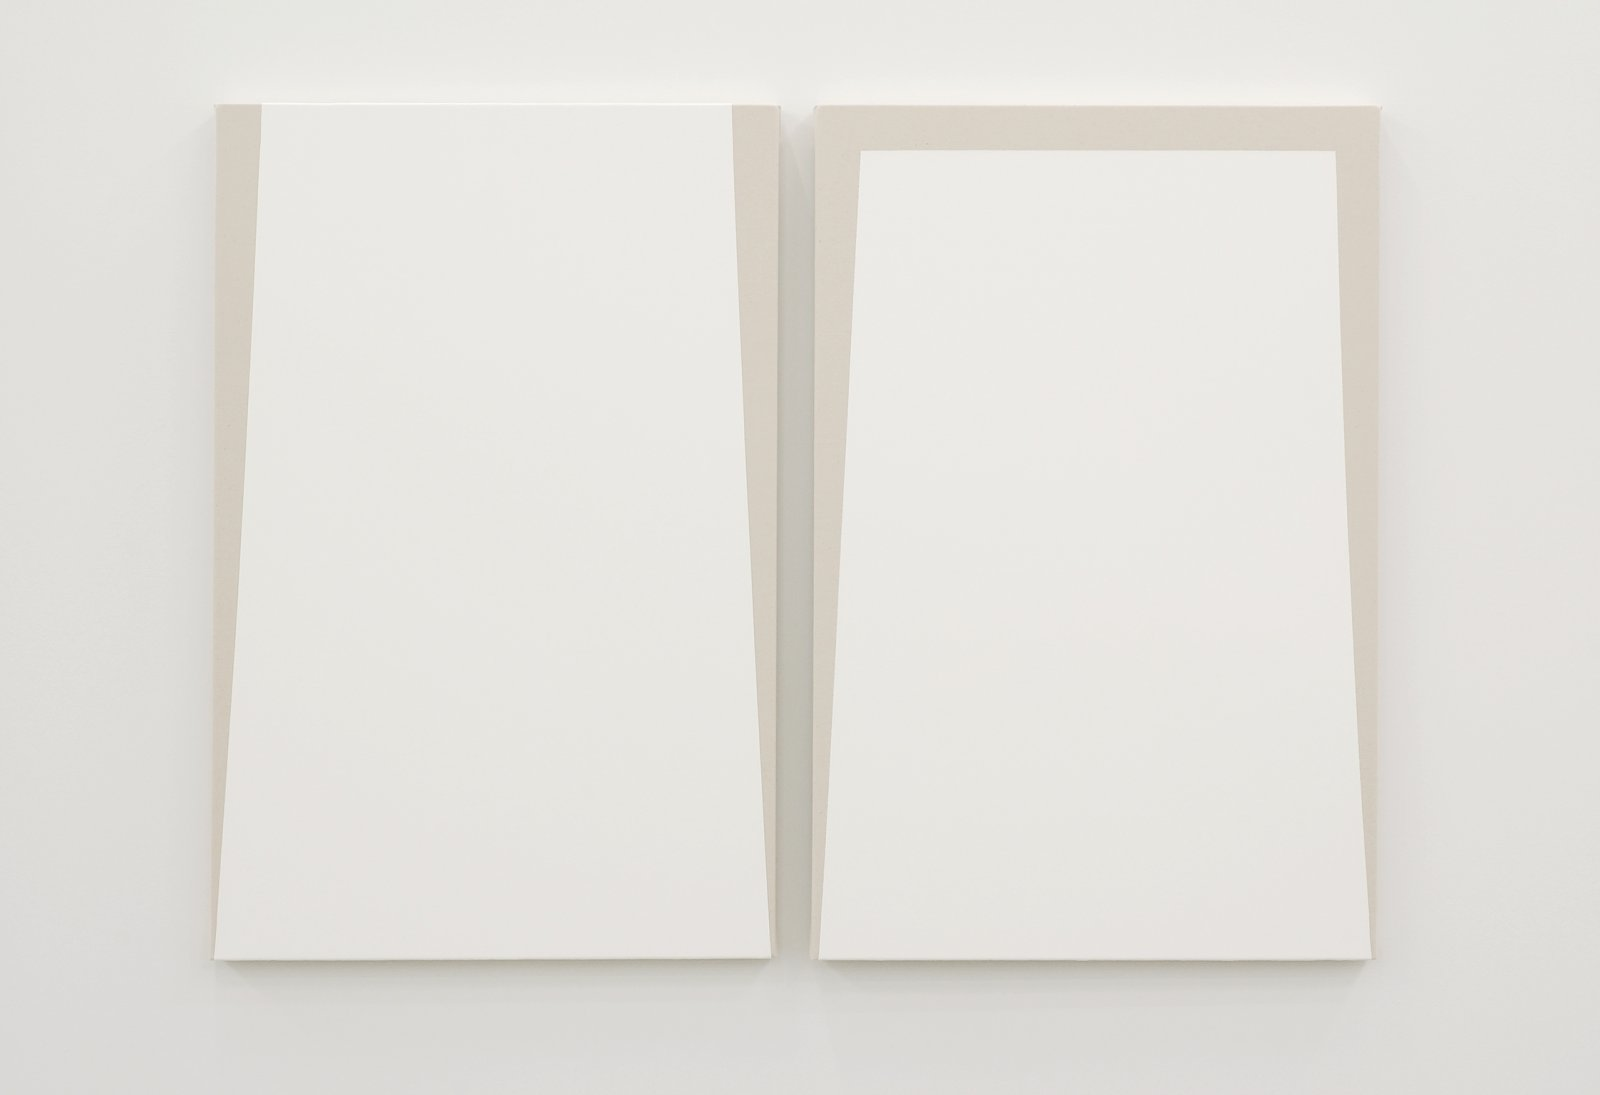 Arabella Campbell, Untitled, 2007, 2 acrylic on canvas paintings, each 36 x 24 in. (91 x 61 cm) by